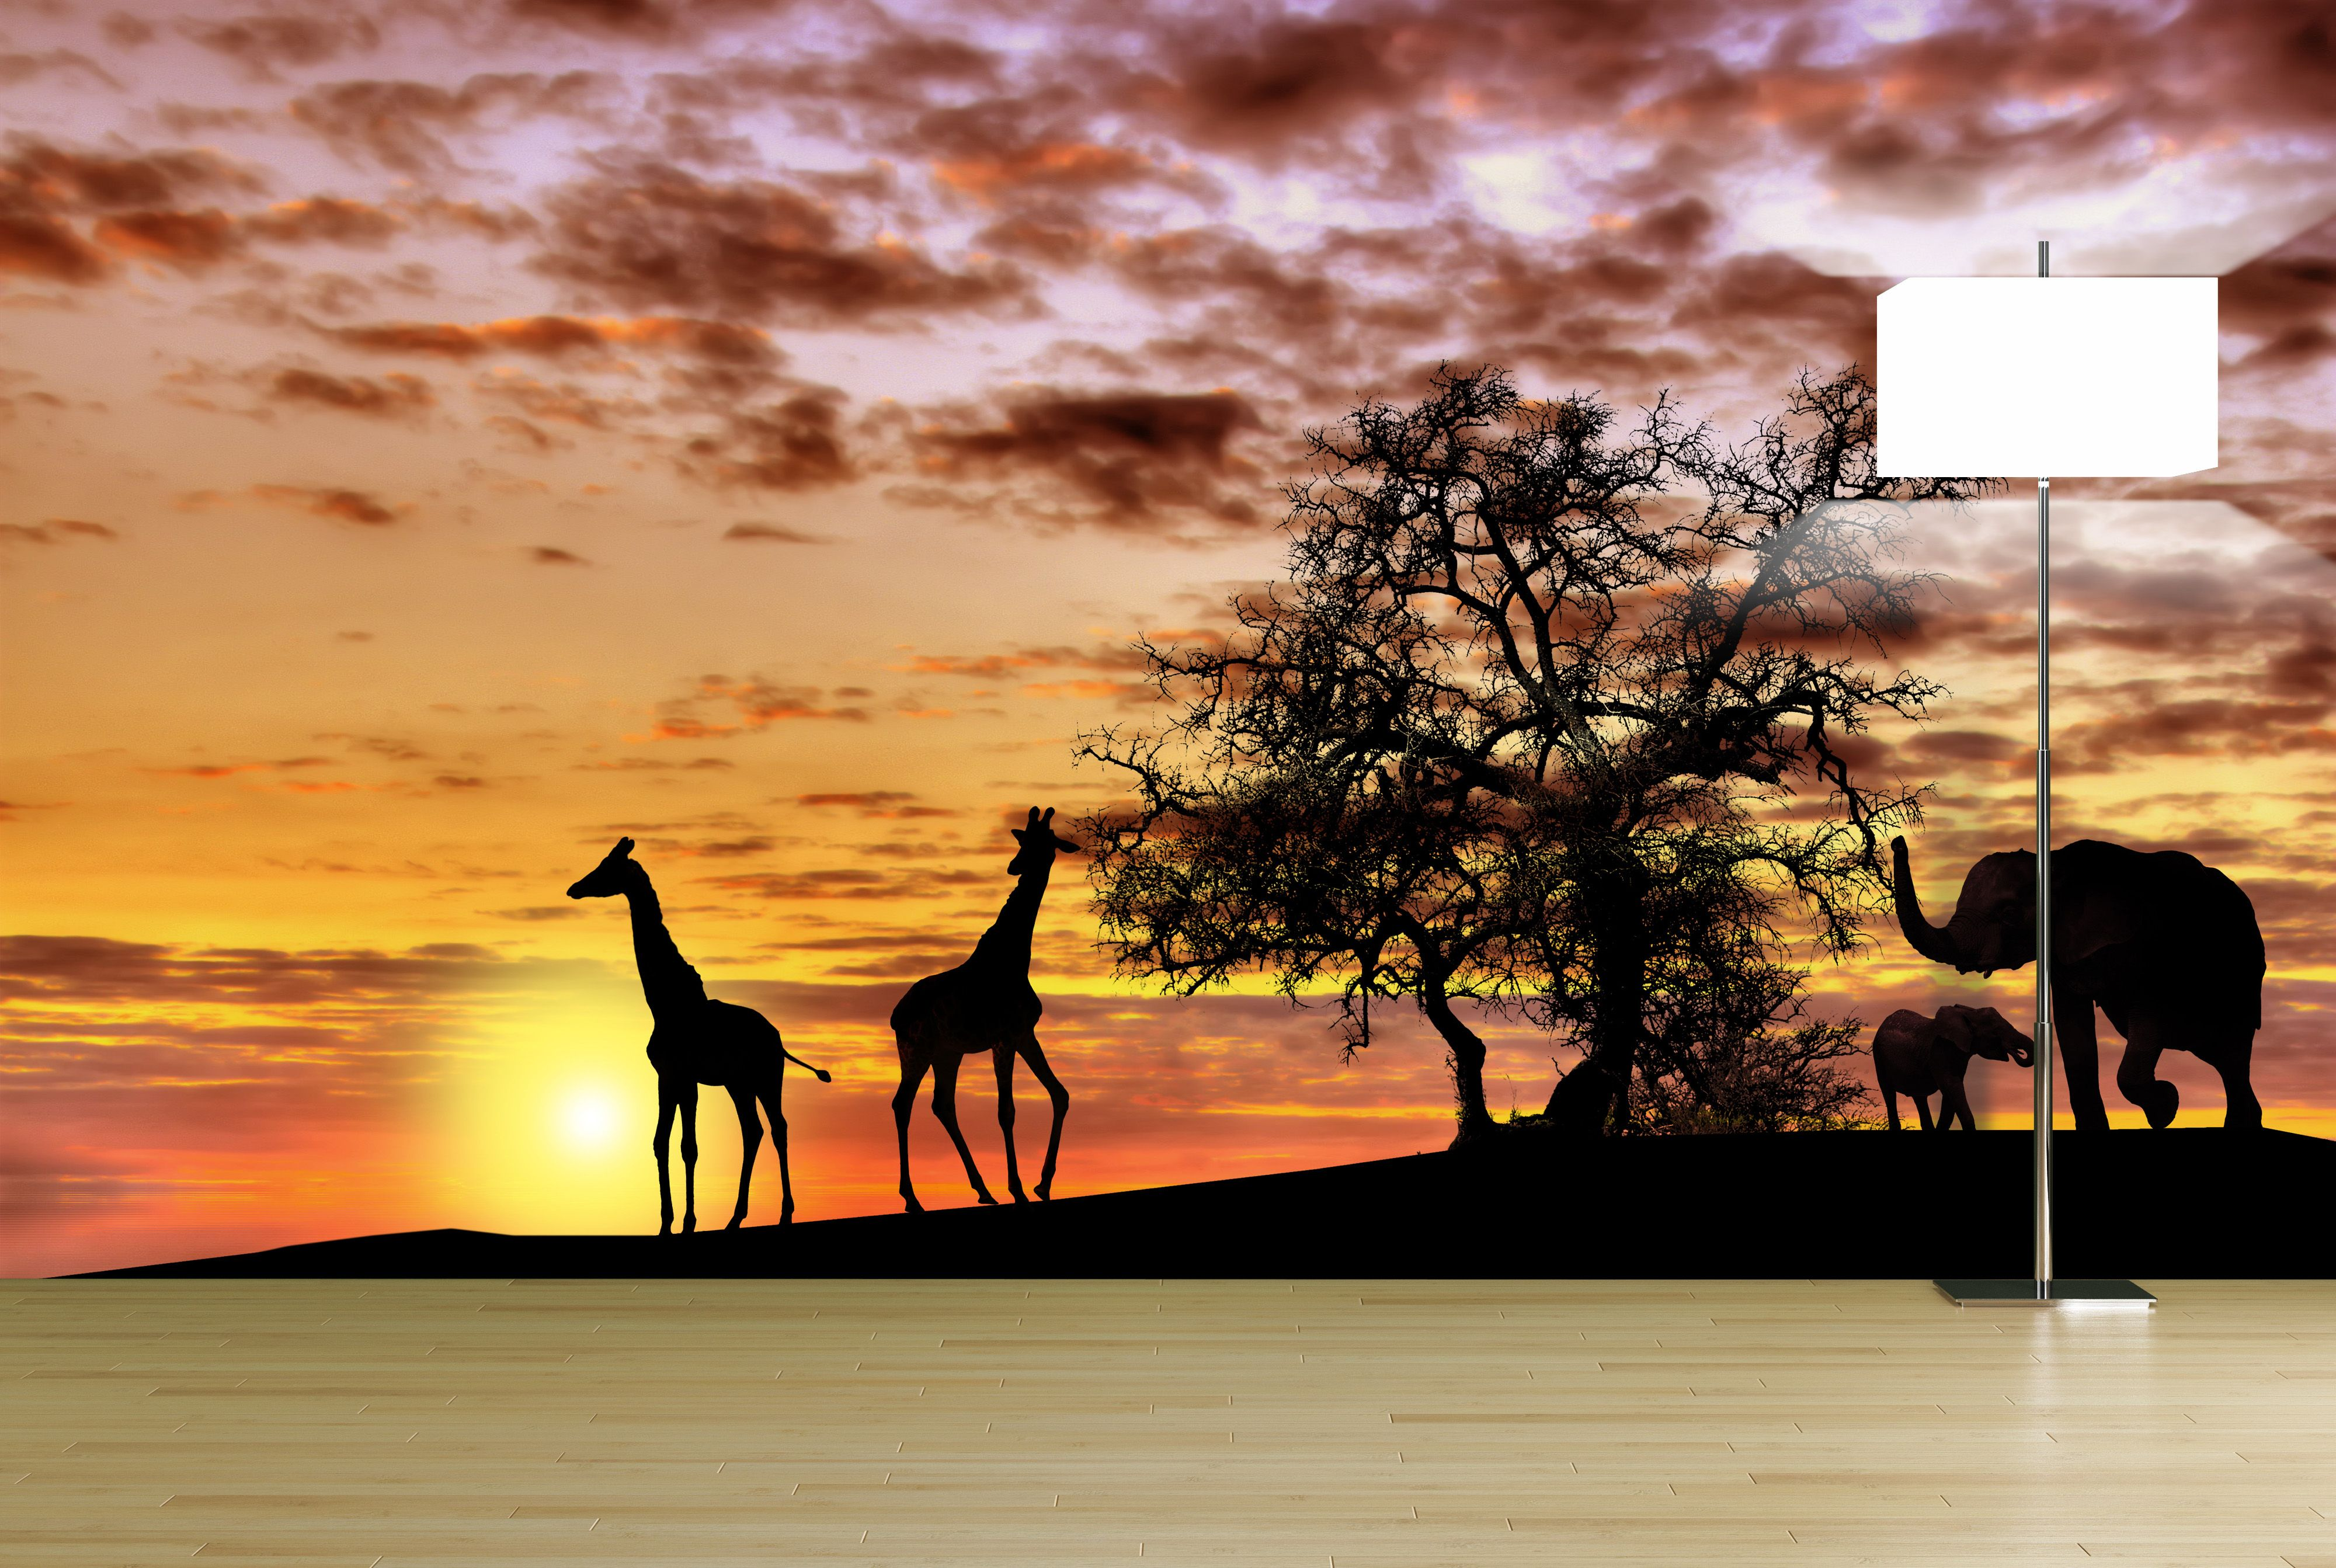 21 Best African Sunset Wall Murals Decals Stickers Wallpaper Mural Photo Paper Decor Removable Wall Decals Ideas African Sunset Wall Mural Decals Sunset